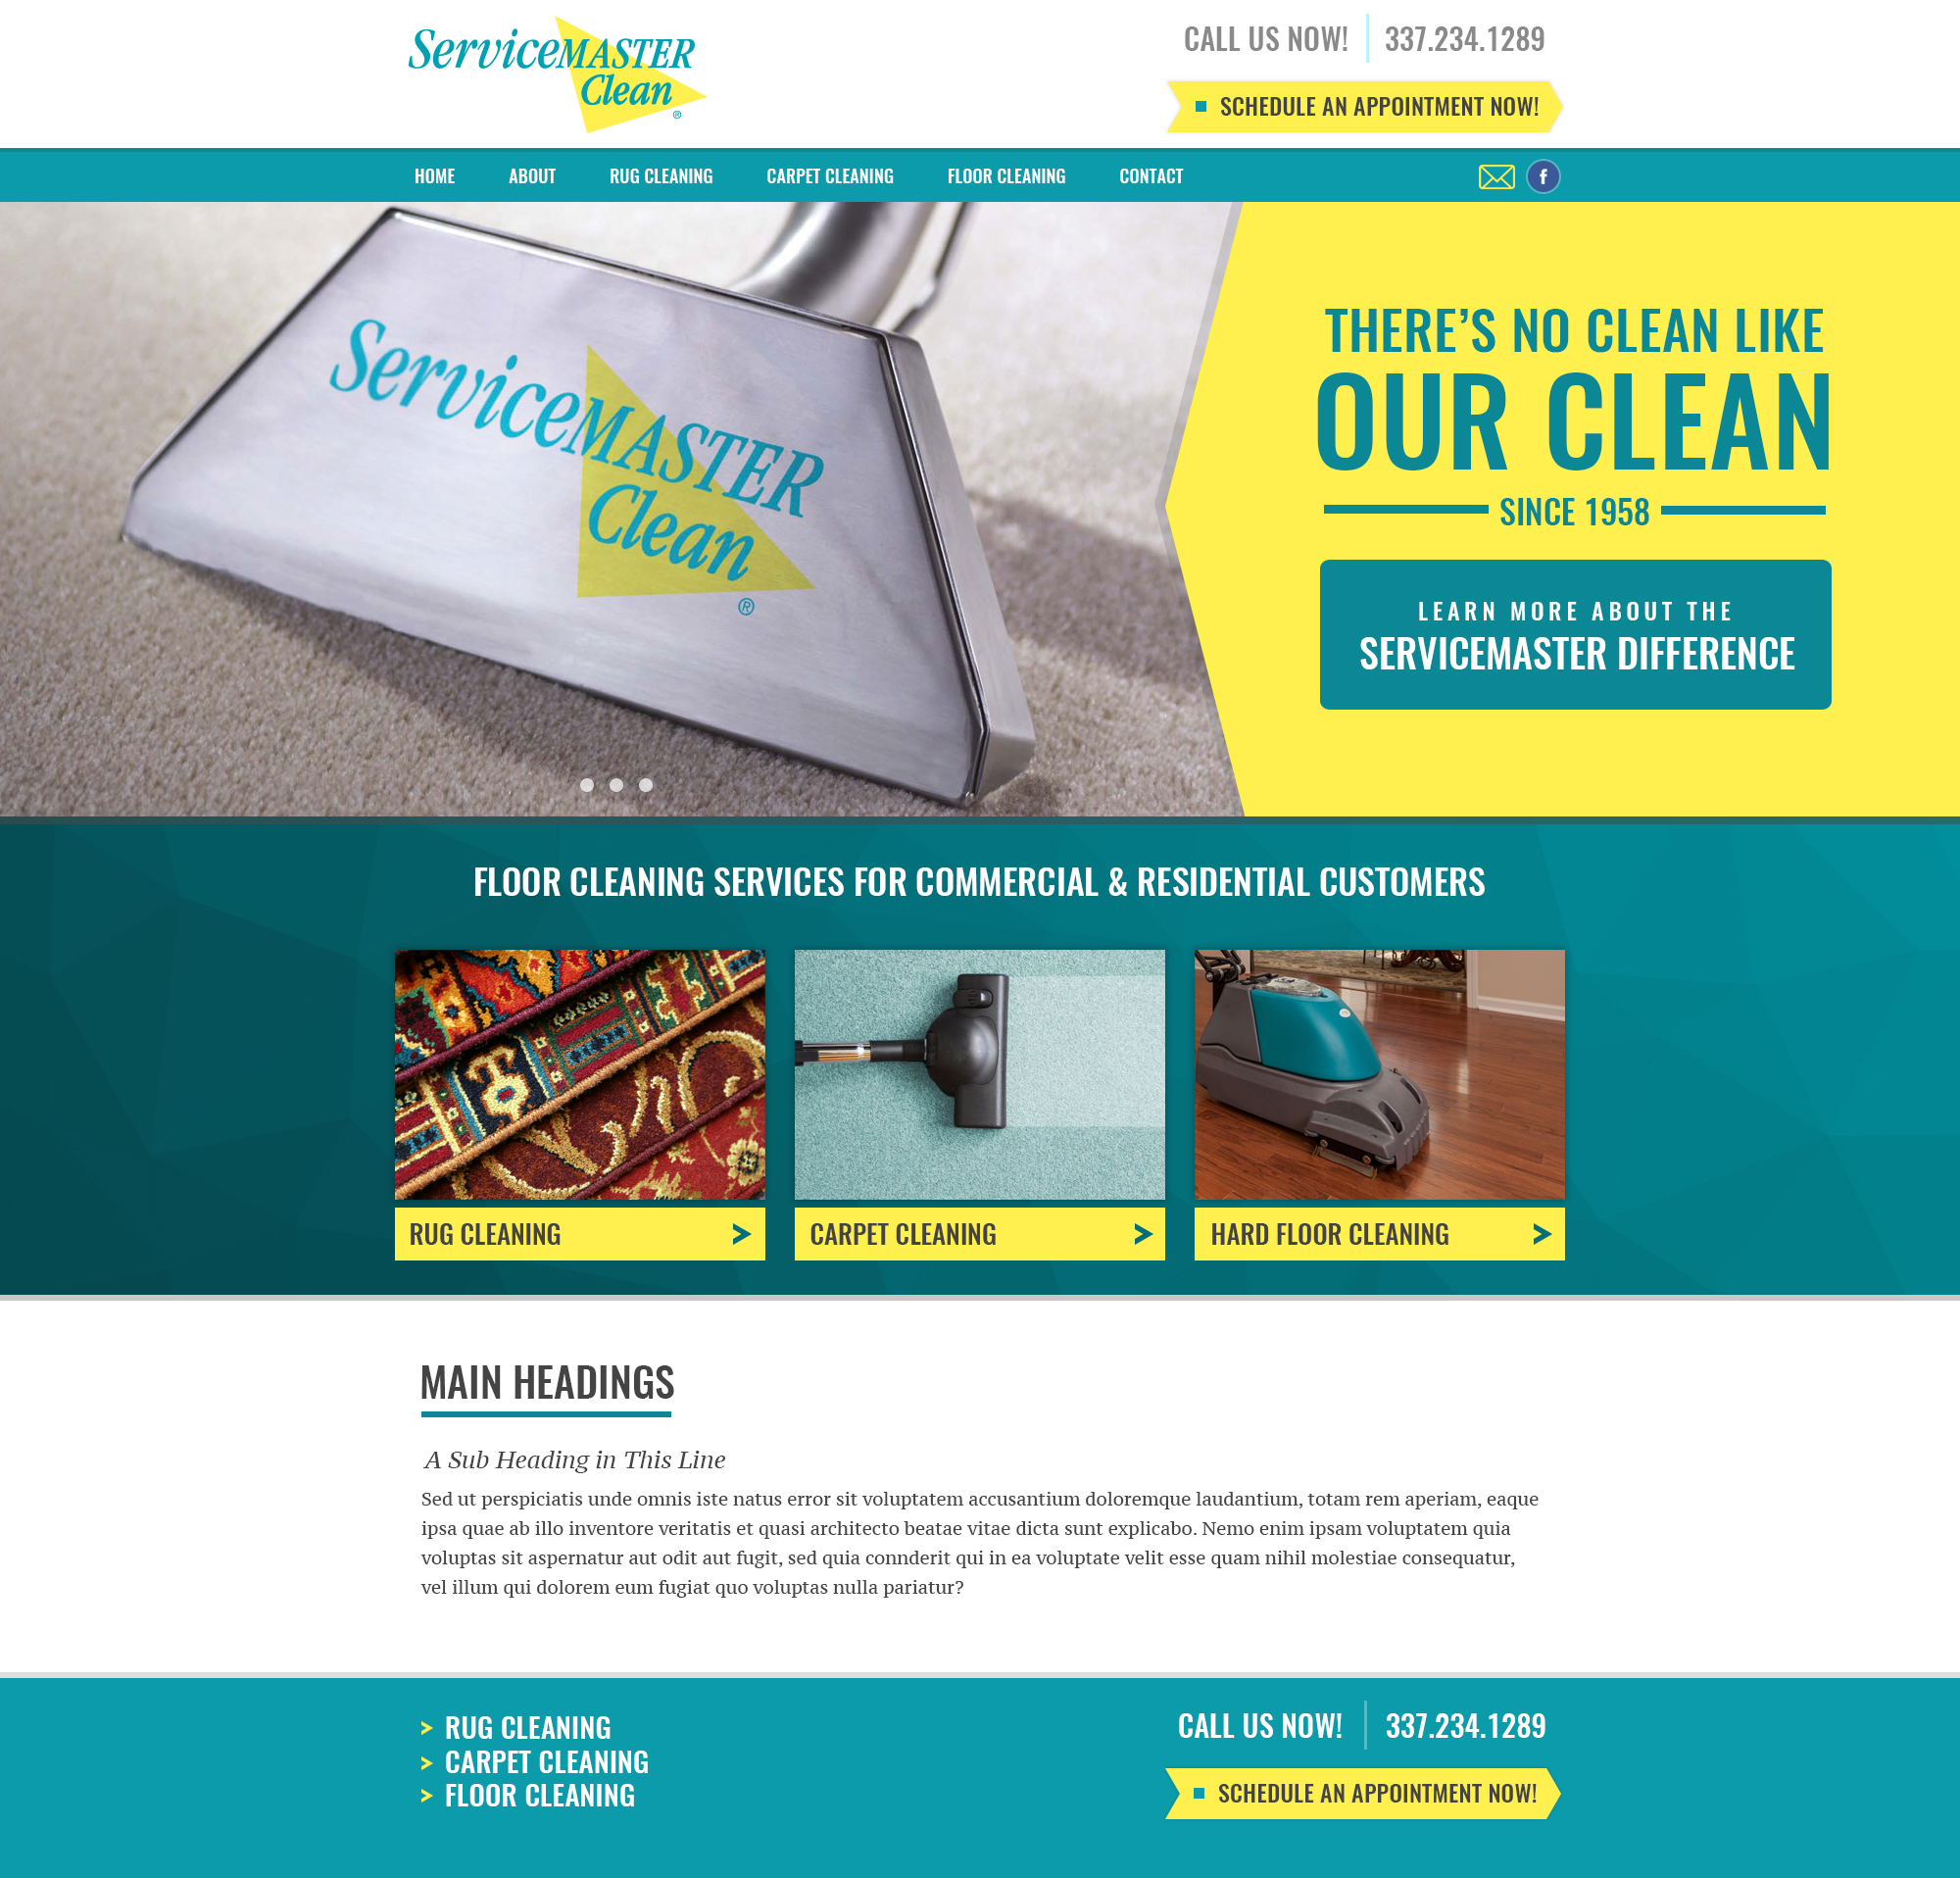 A janitorial service web design screenshot for a company in Houston TX